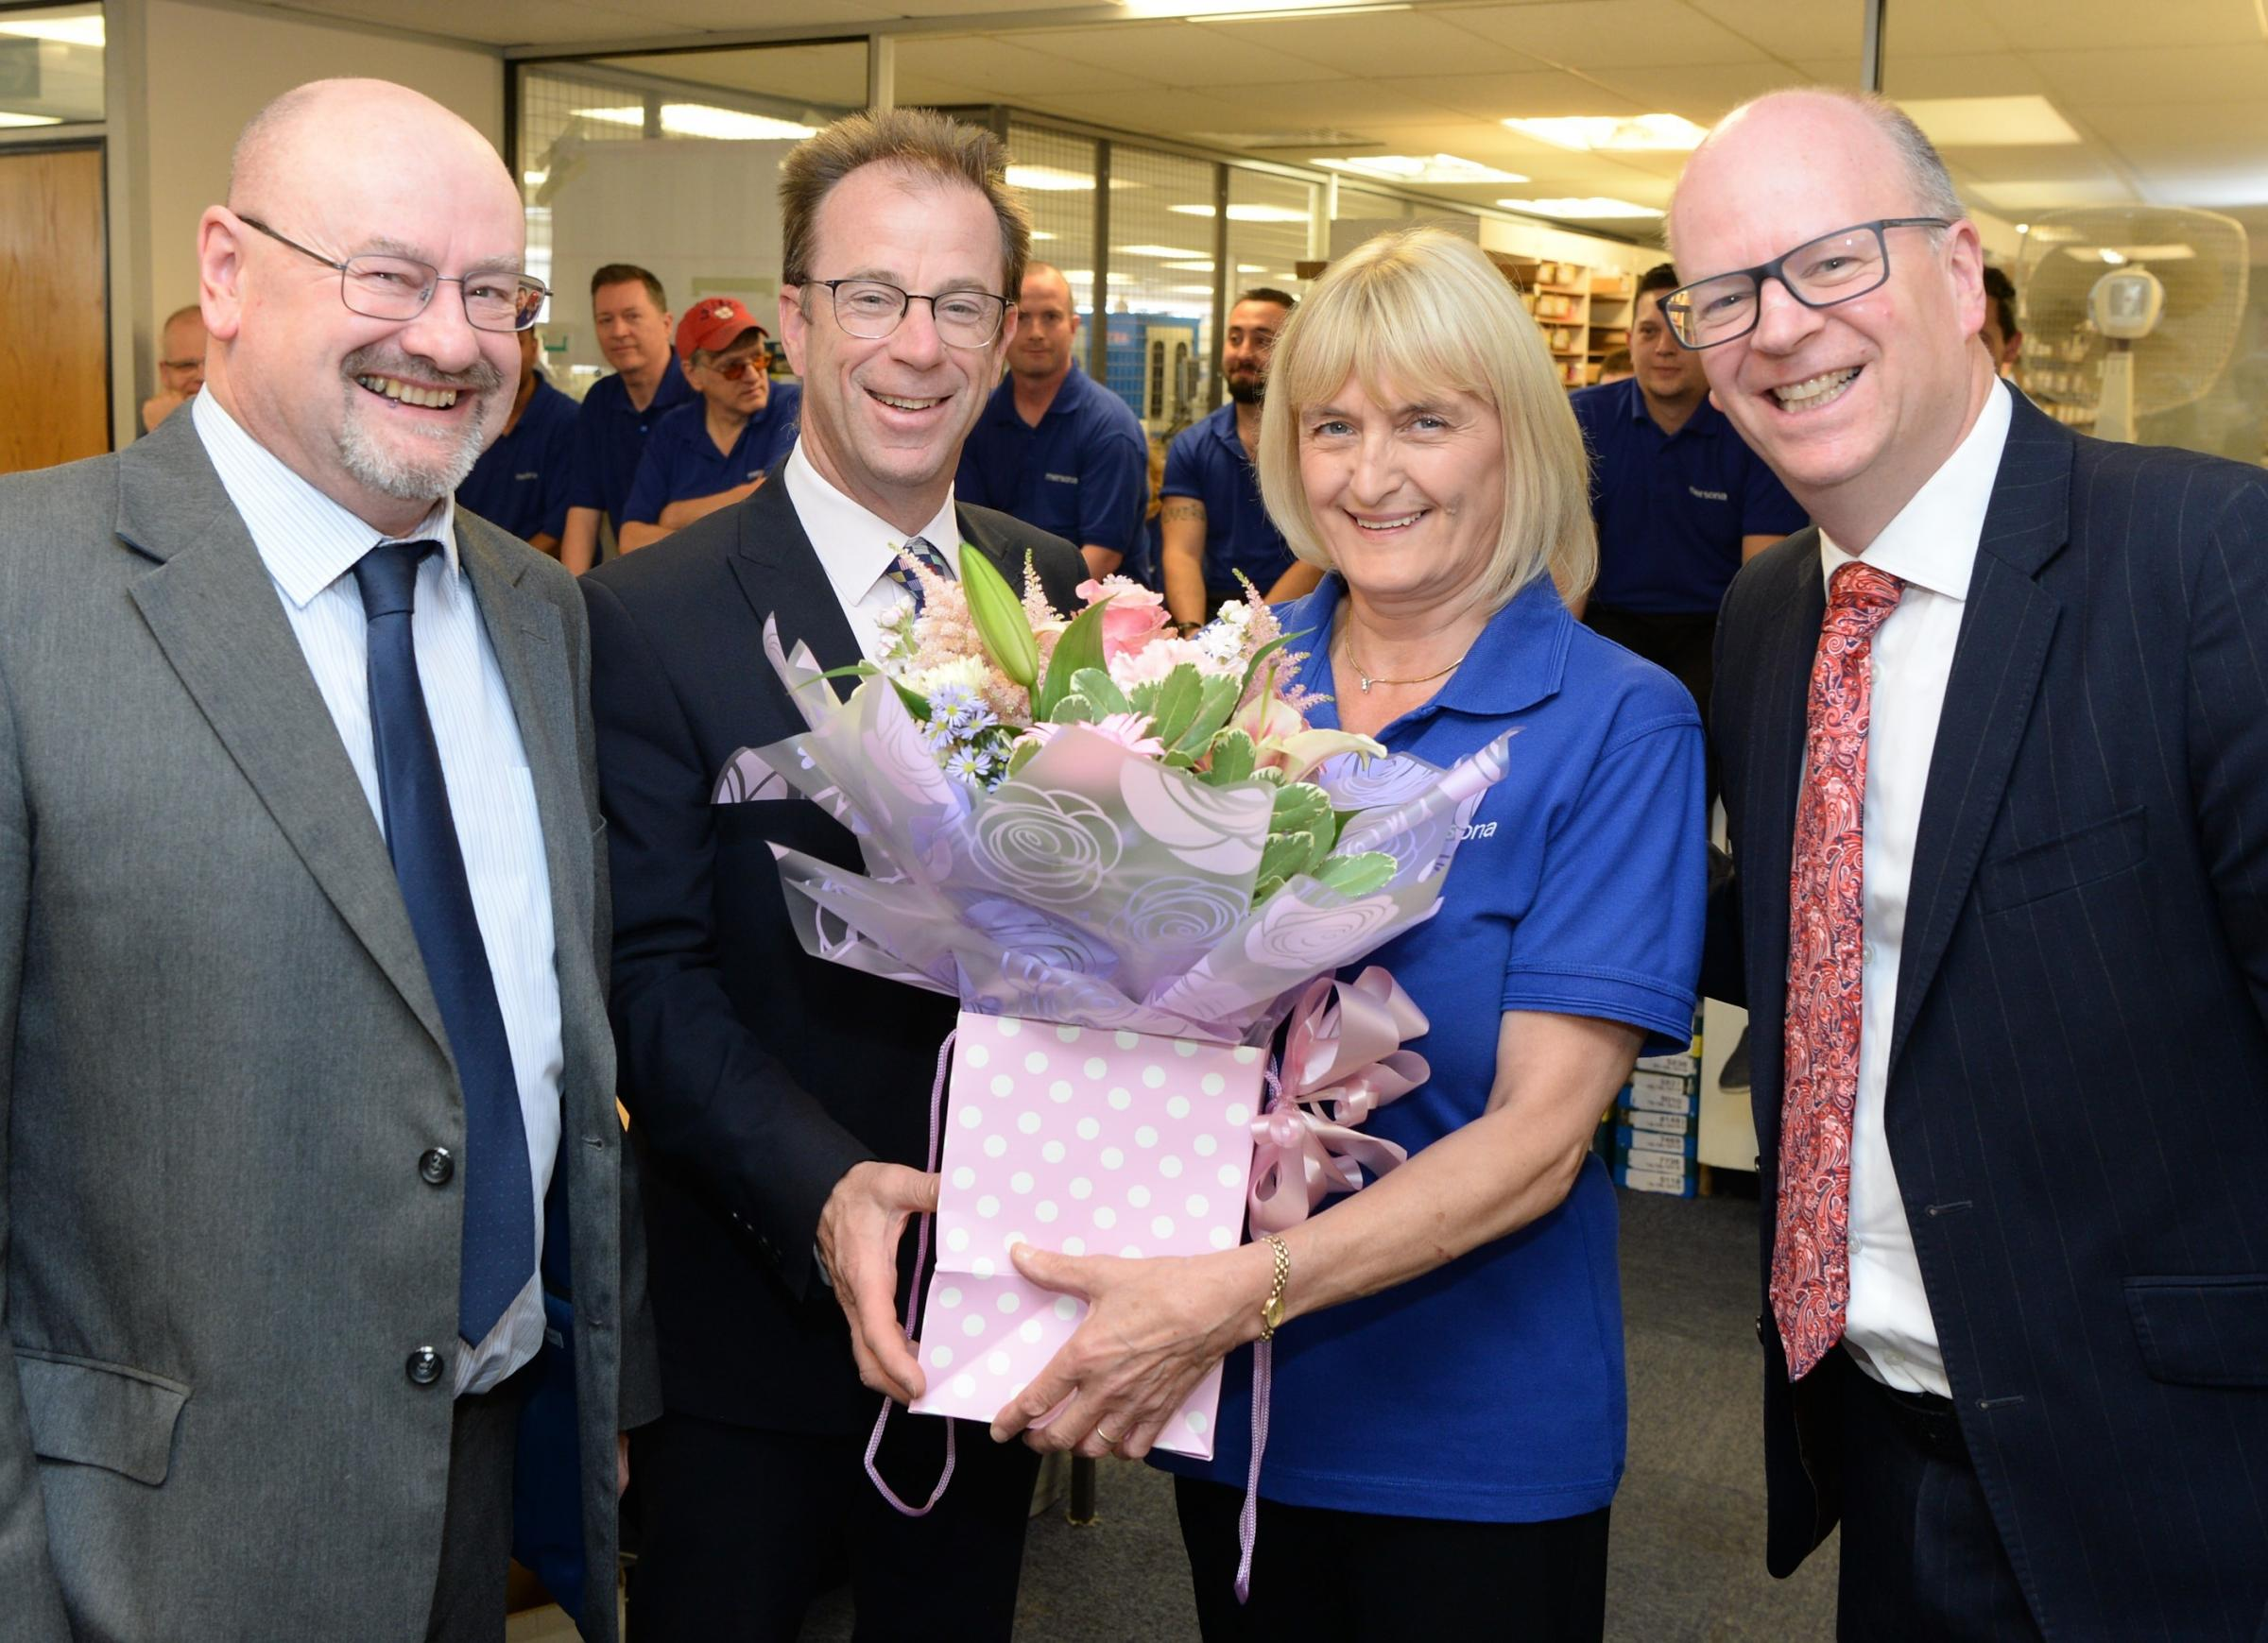 Chris Keeley celebrates 40 years of loyal service to Halesowen opticians Scrivens, alongside Gary Davies, Nicholas Georgevic and Mark Georgevic.